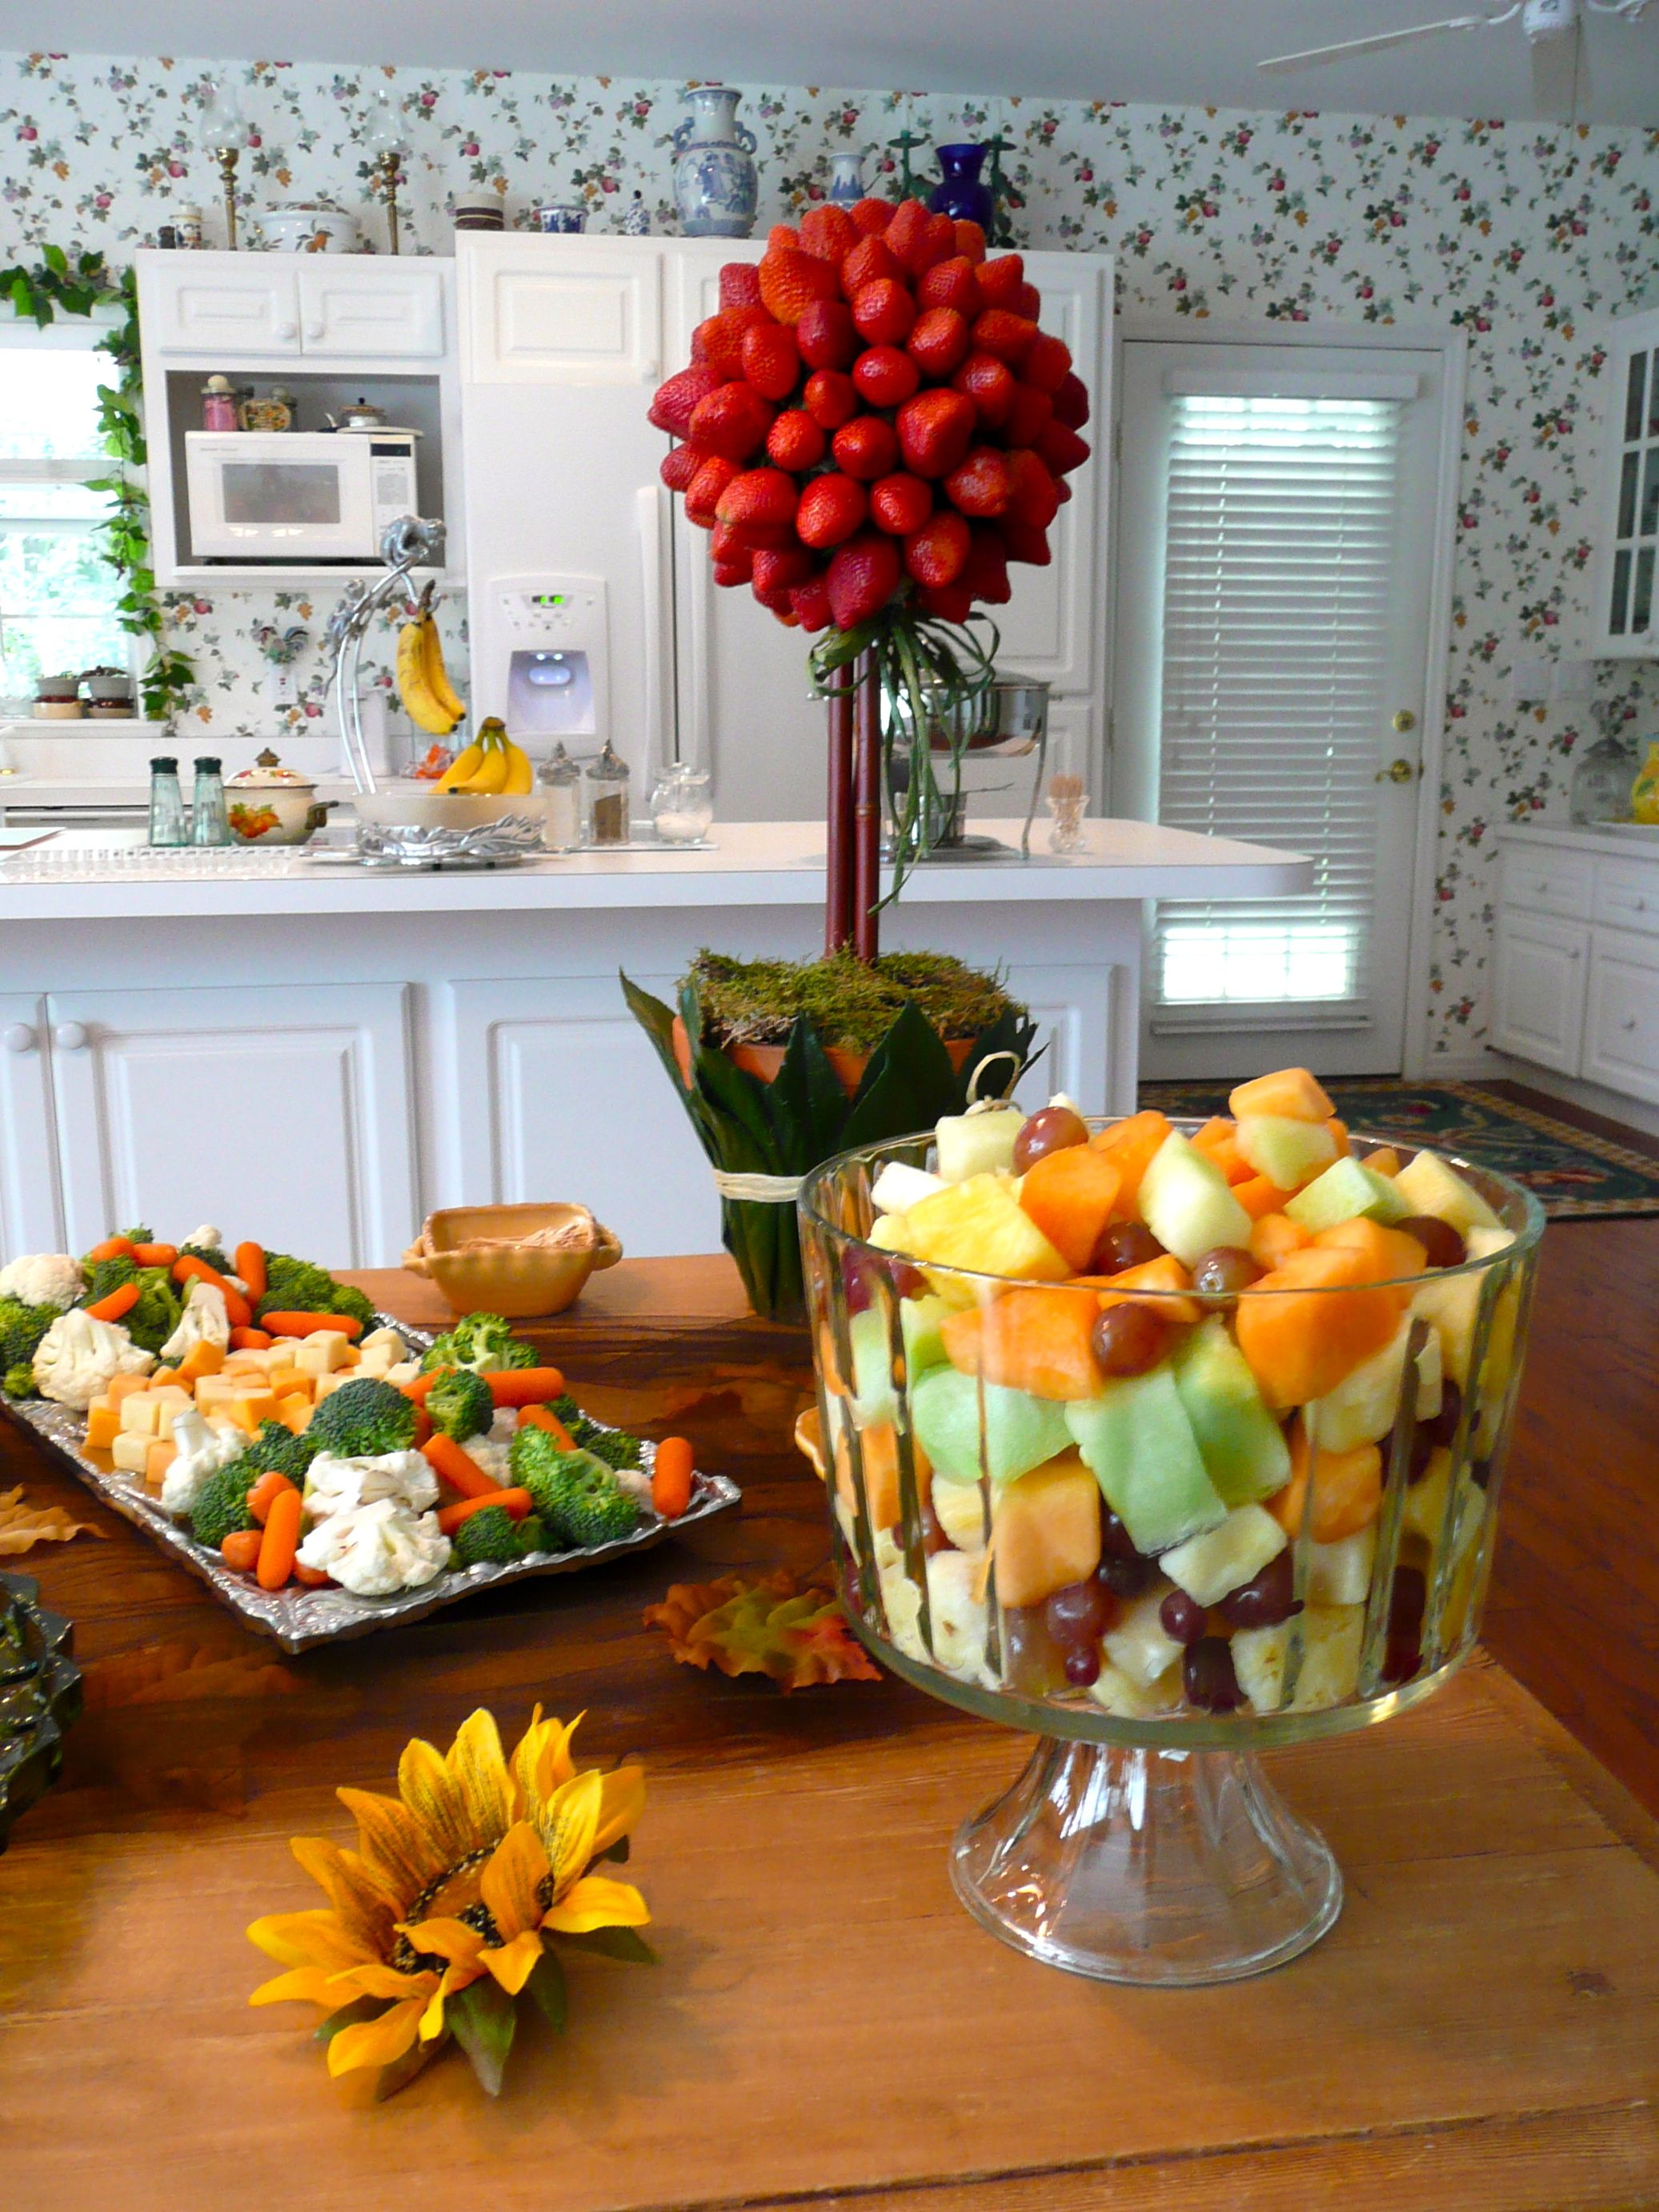 Can T Go Wrong With A Basic Crudite Platter And Simple Fruit Salad